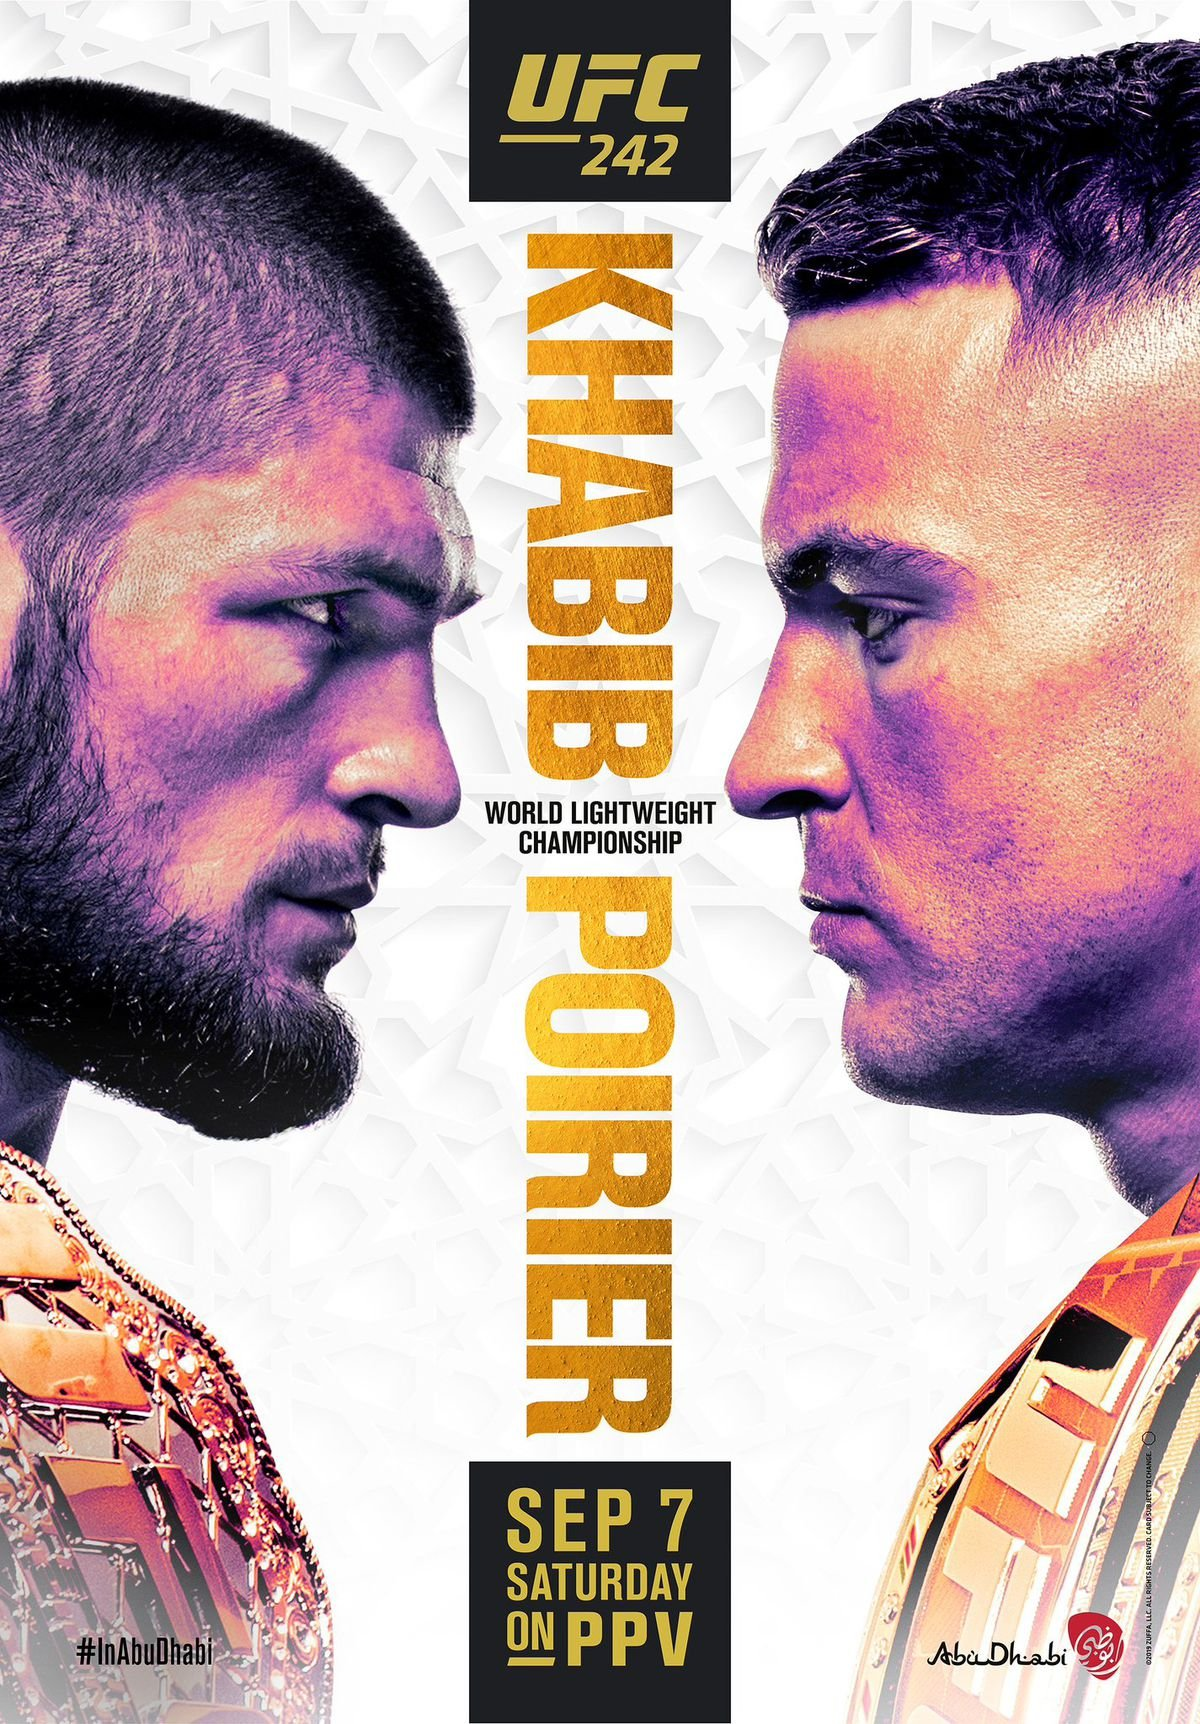 UFC 242: Khabib Nurmagomedov vs Dustin Poirier Prediction